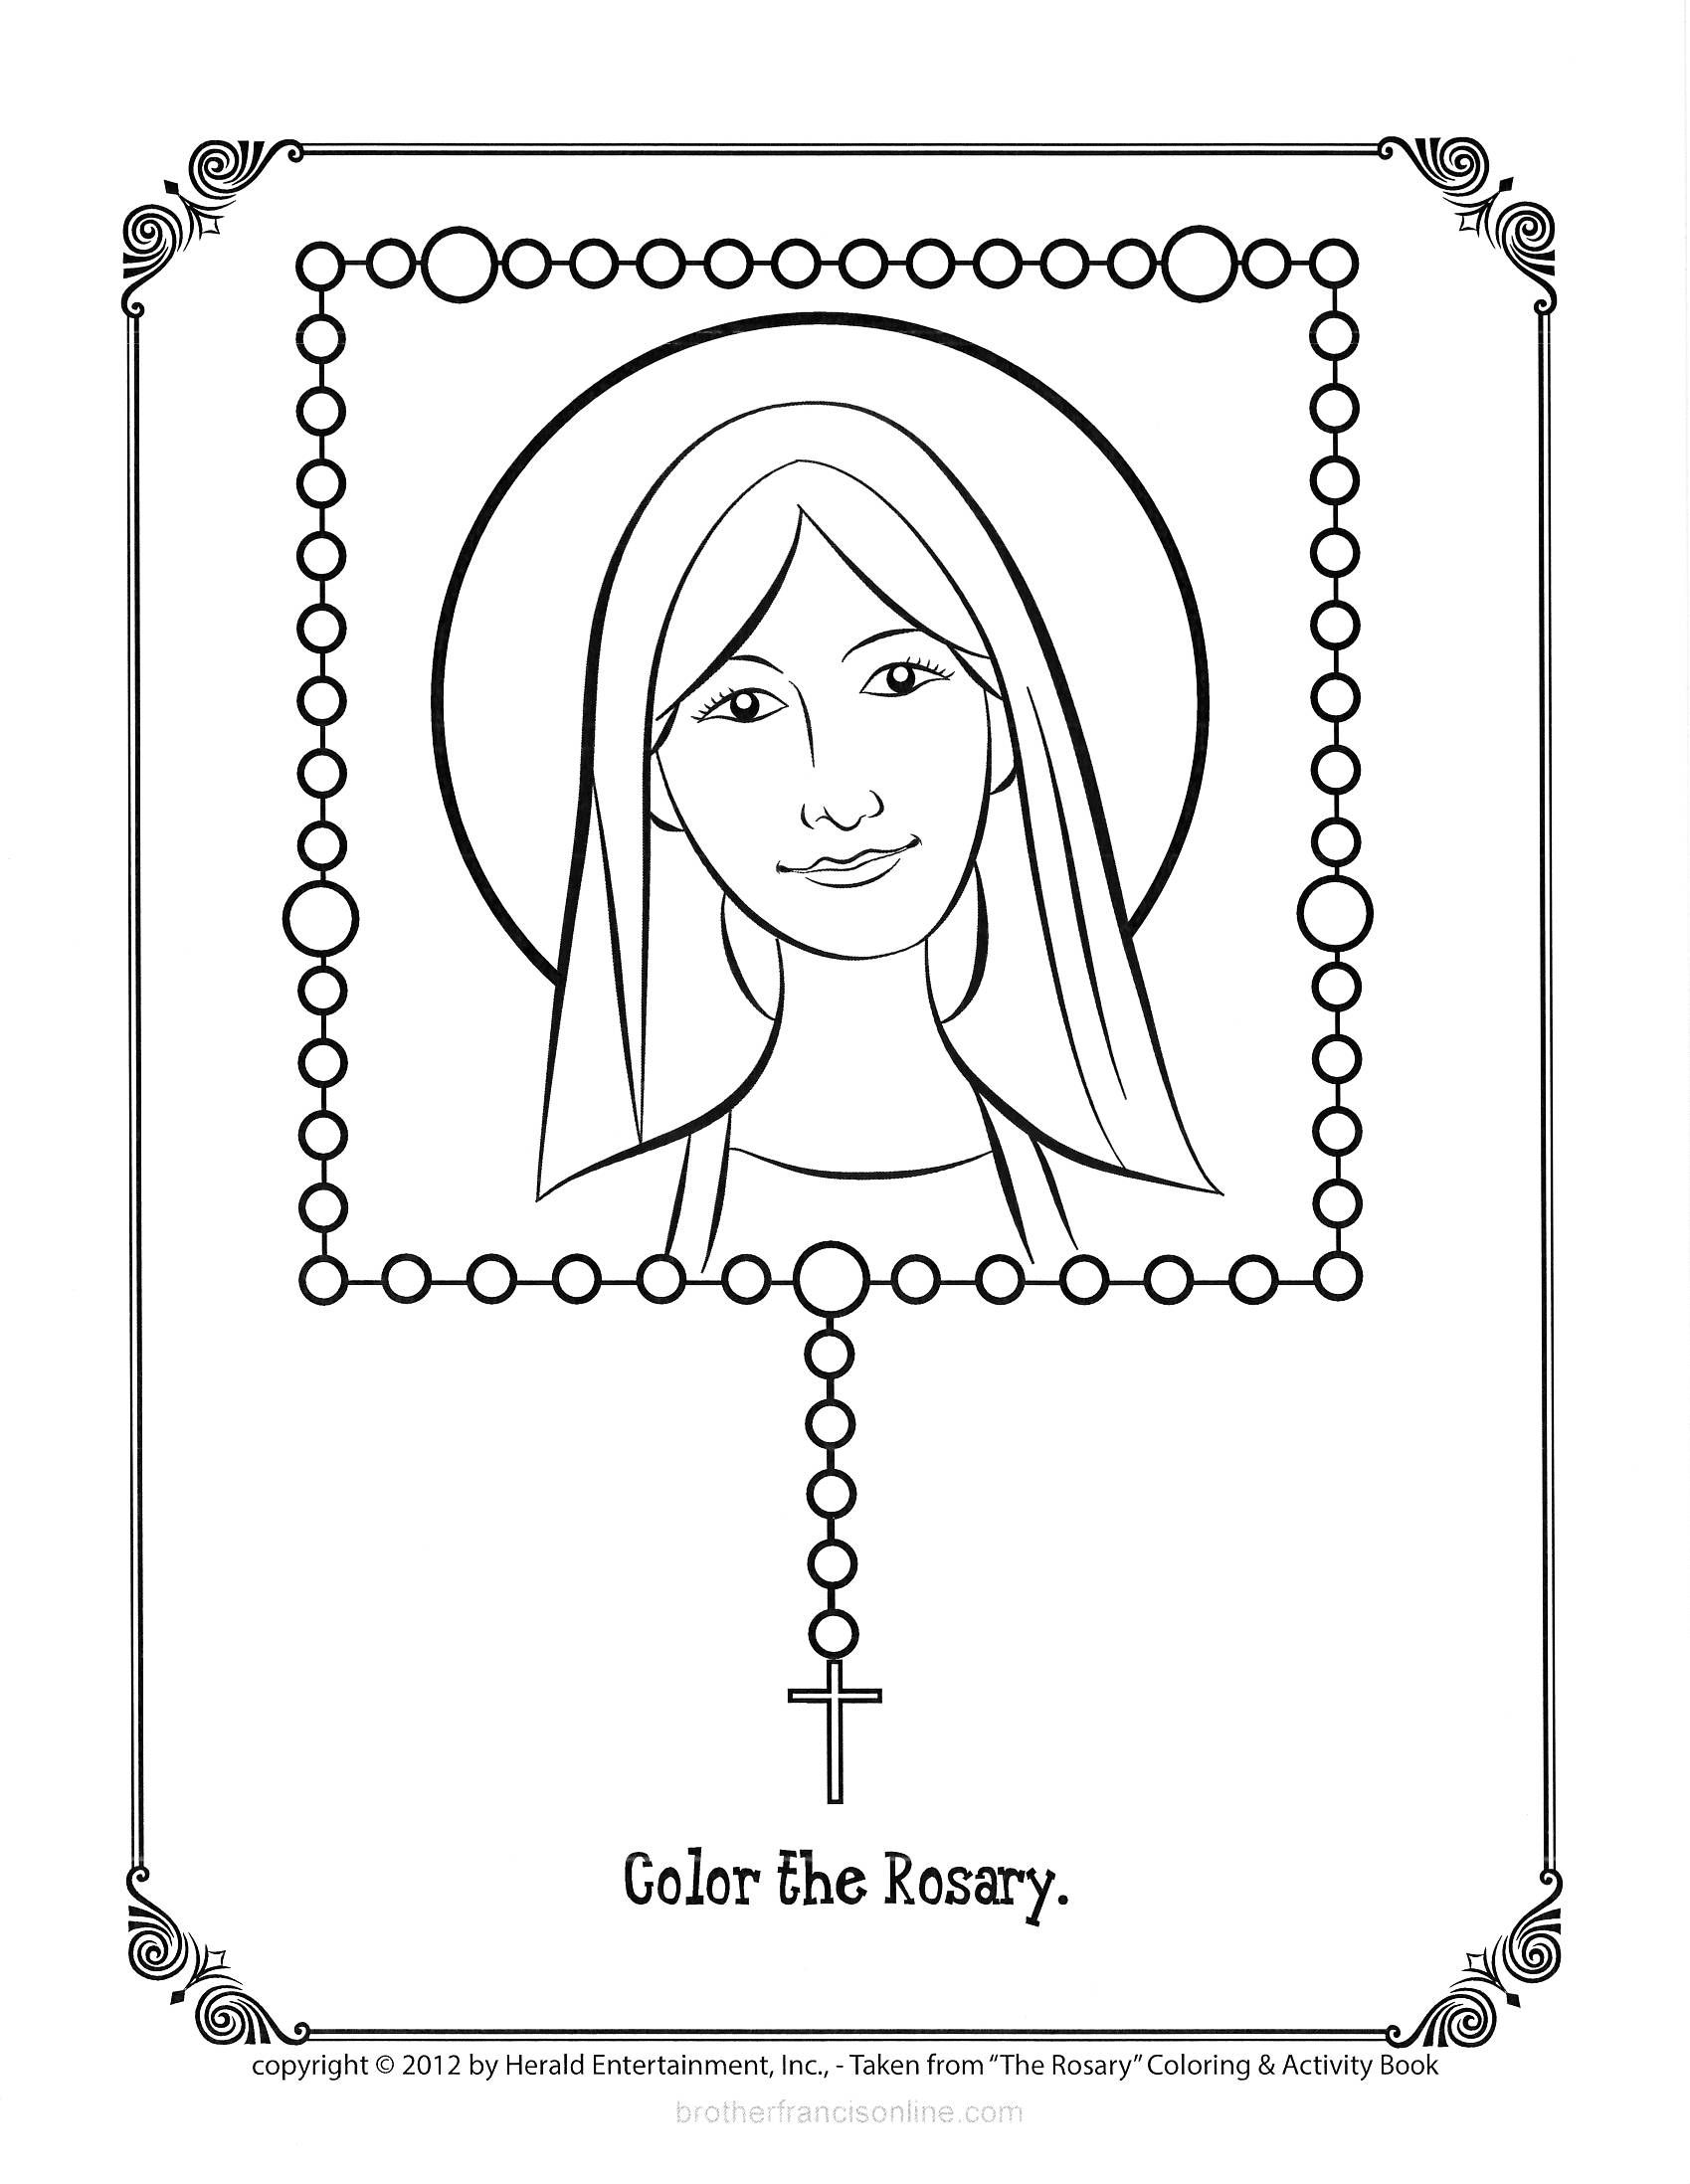 medium resolution of pray and color a rosary bead as you complete each prayer and mystery see our other pins for the rosary booklets in english and spanish as well as folding